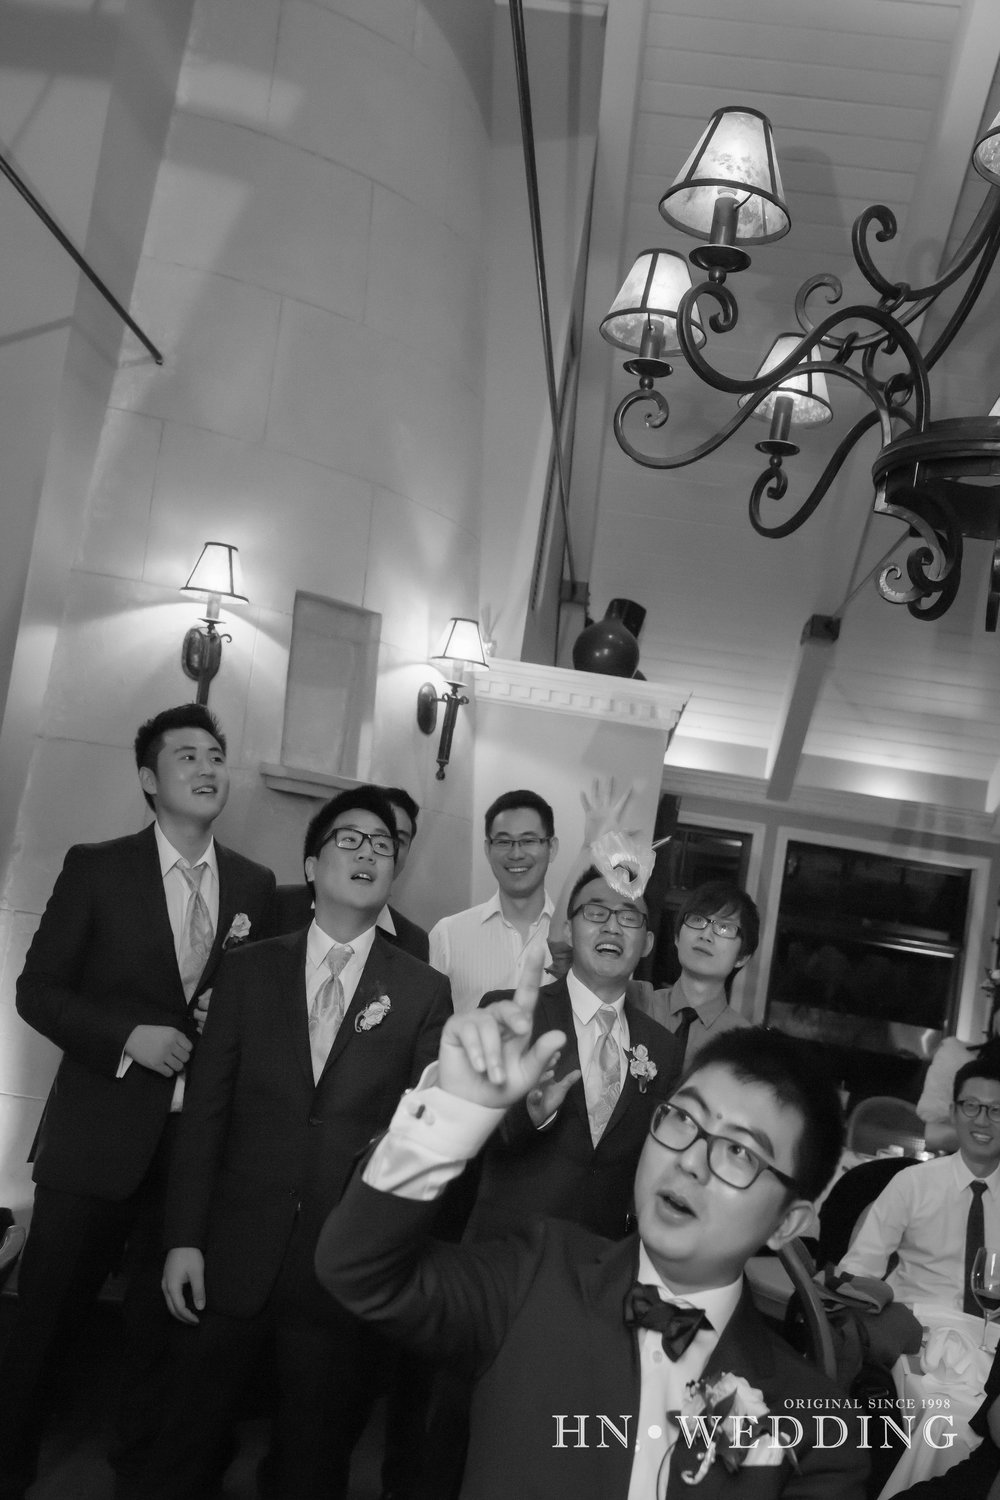 HNwedding-weddingday-20161029-6183.jpg